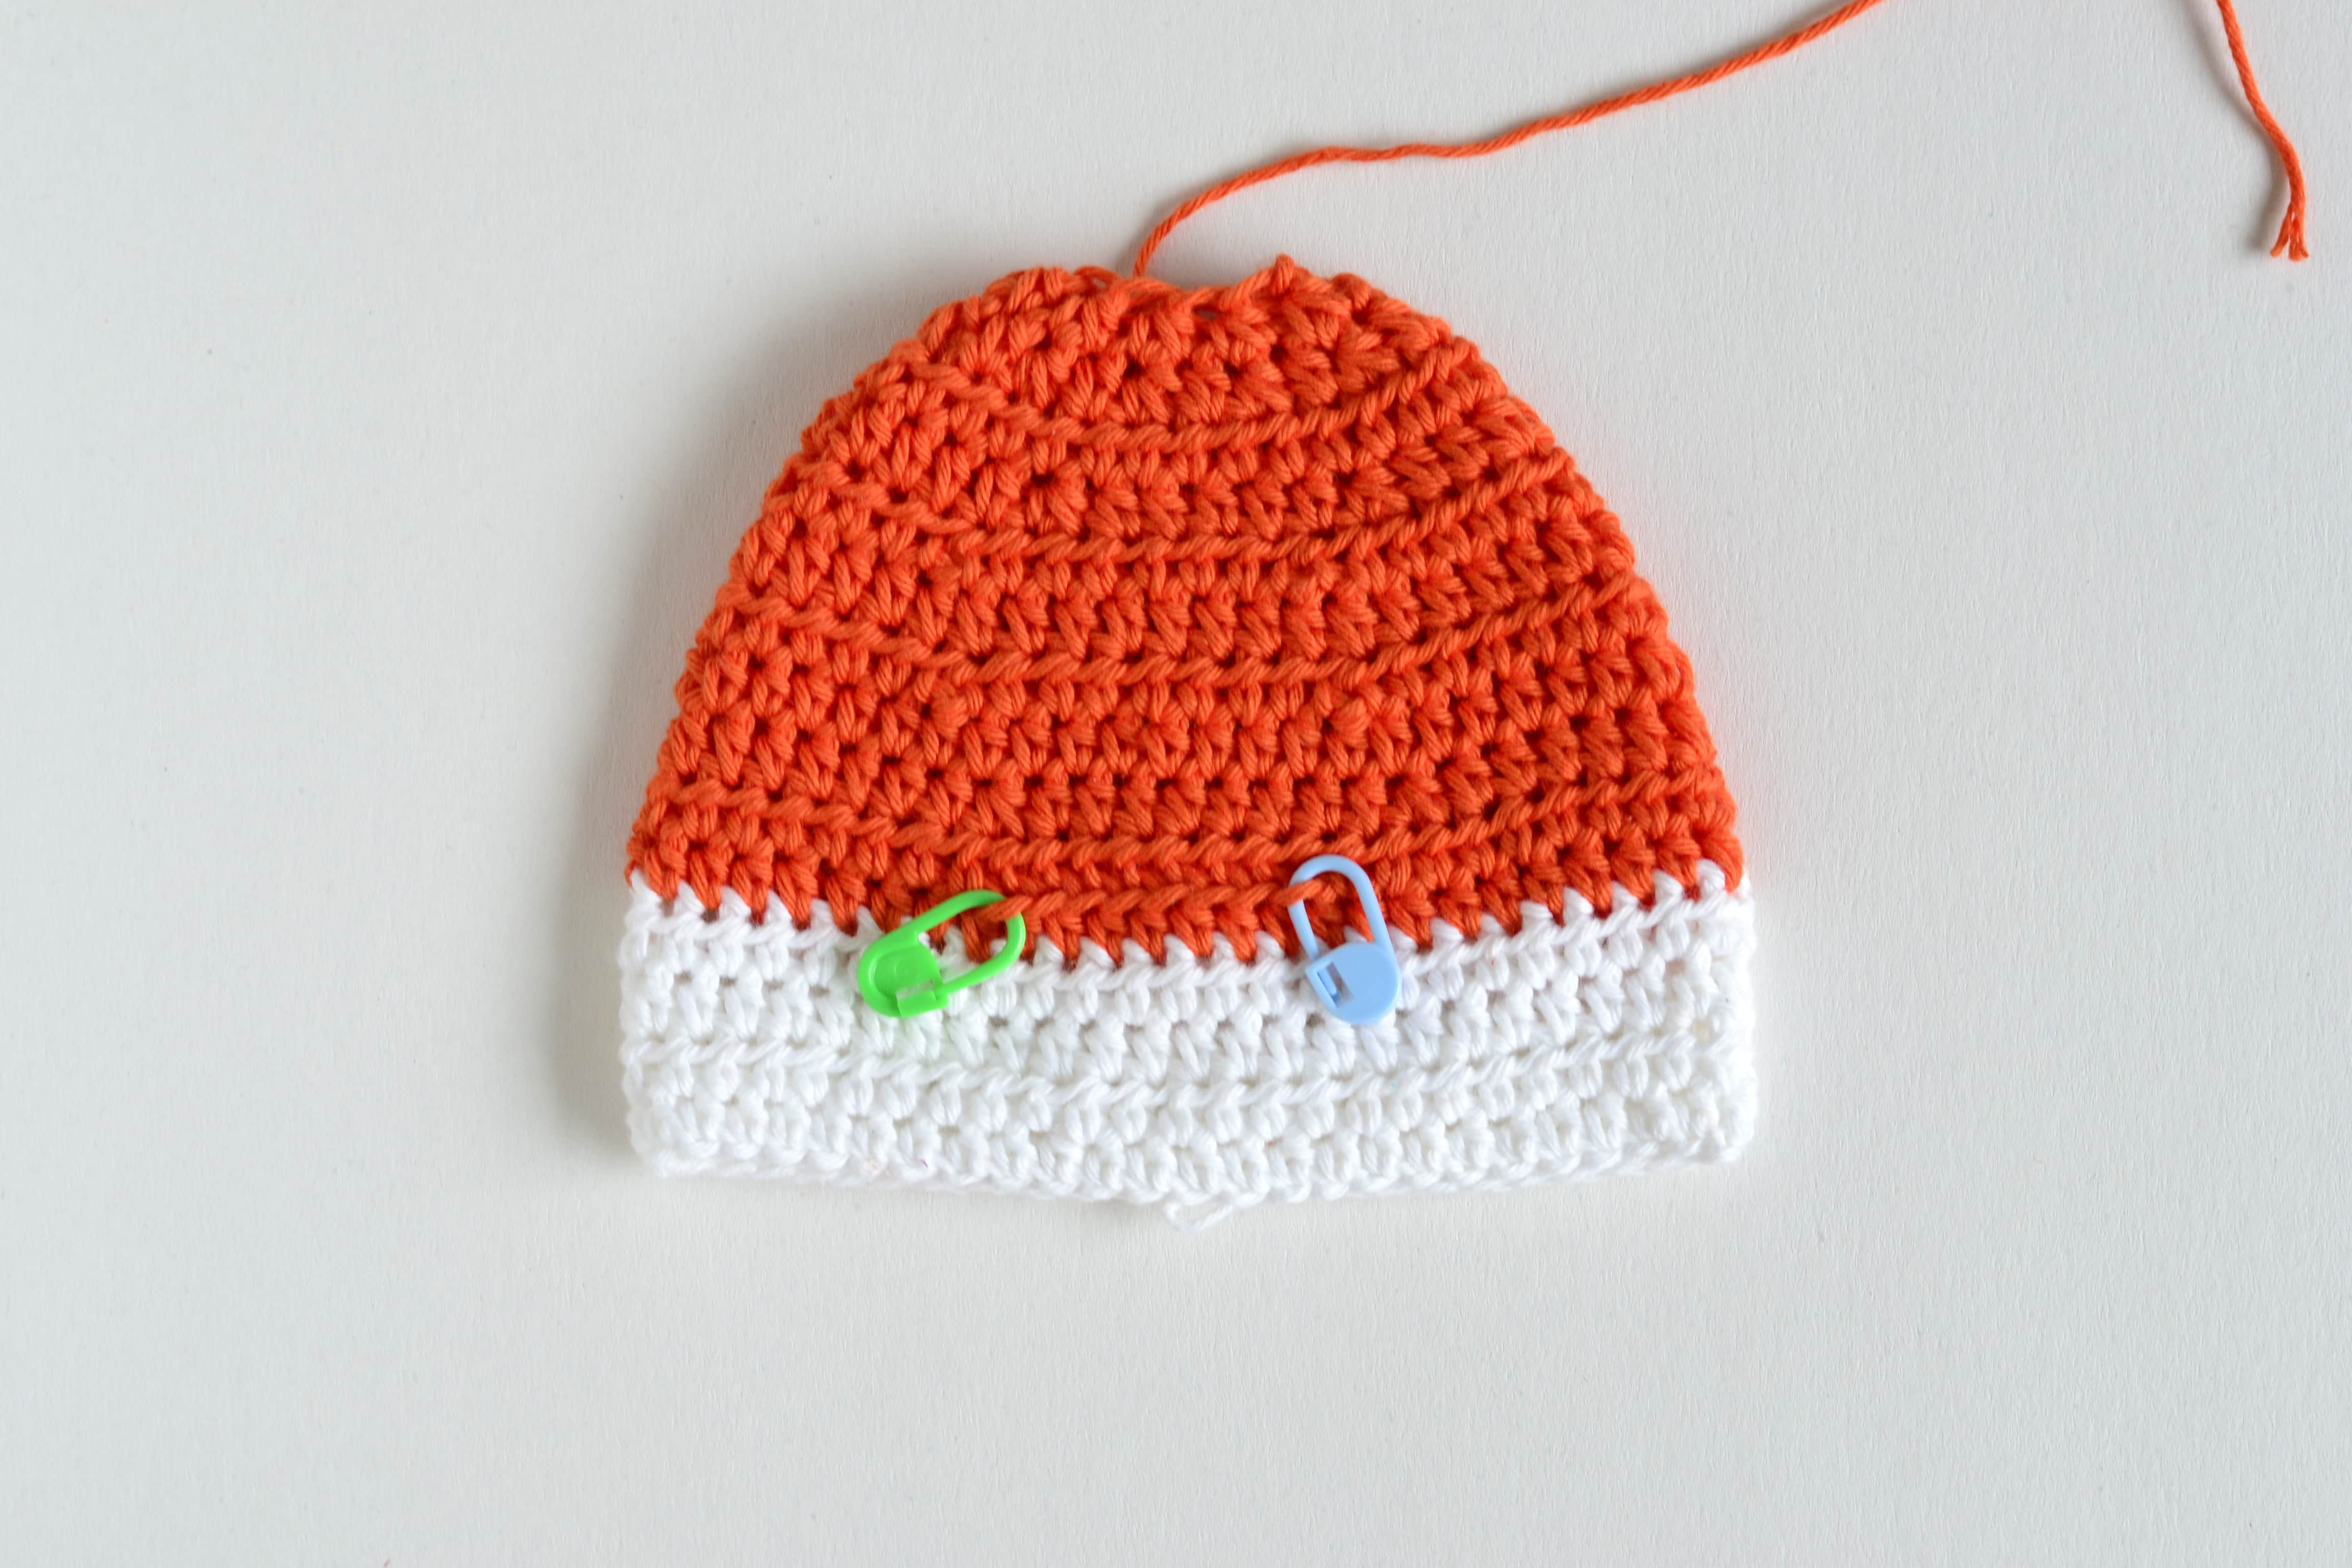 Crochet baby hat and diaper cover cute fox croby patterns croby patterns free crochet pattern cute fox bankloansurffo Gallery